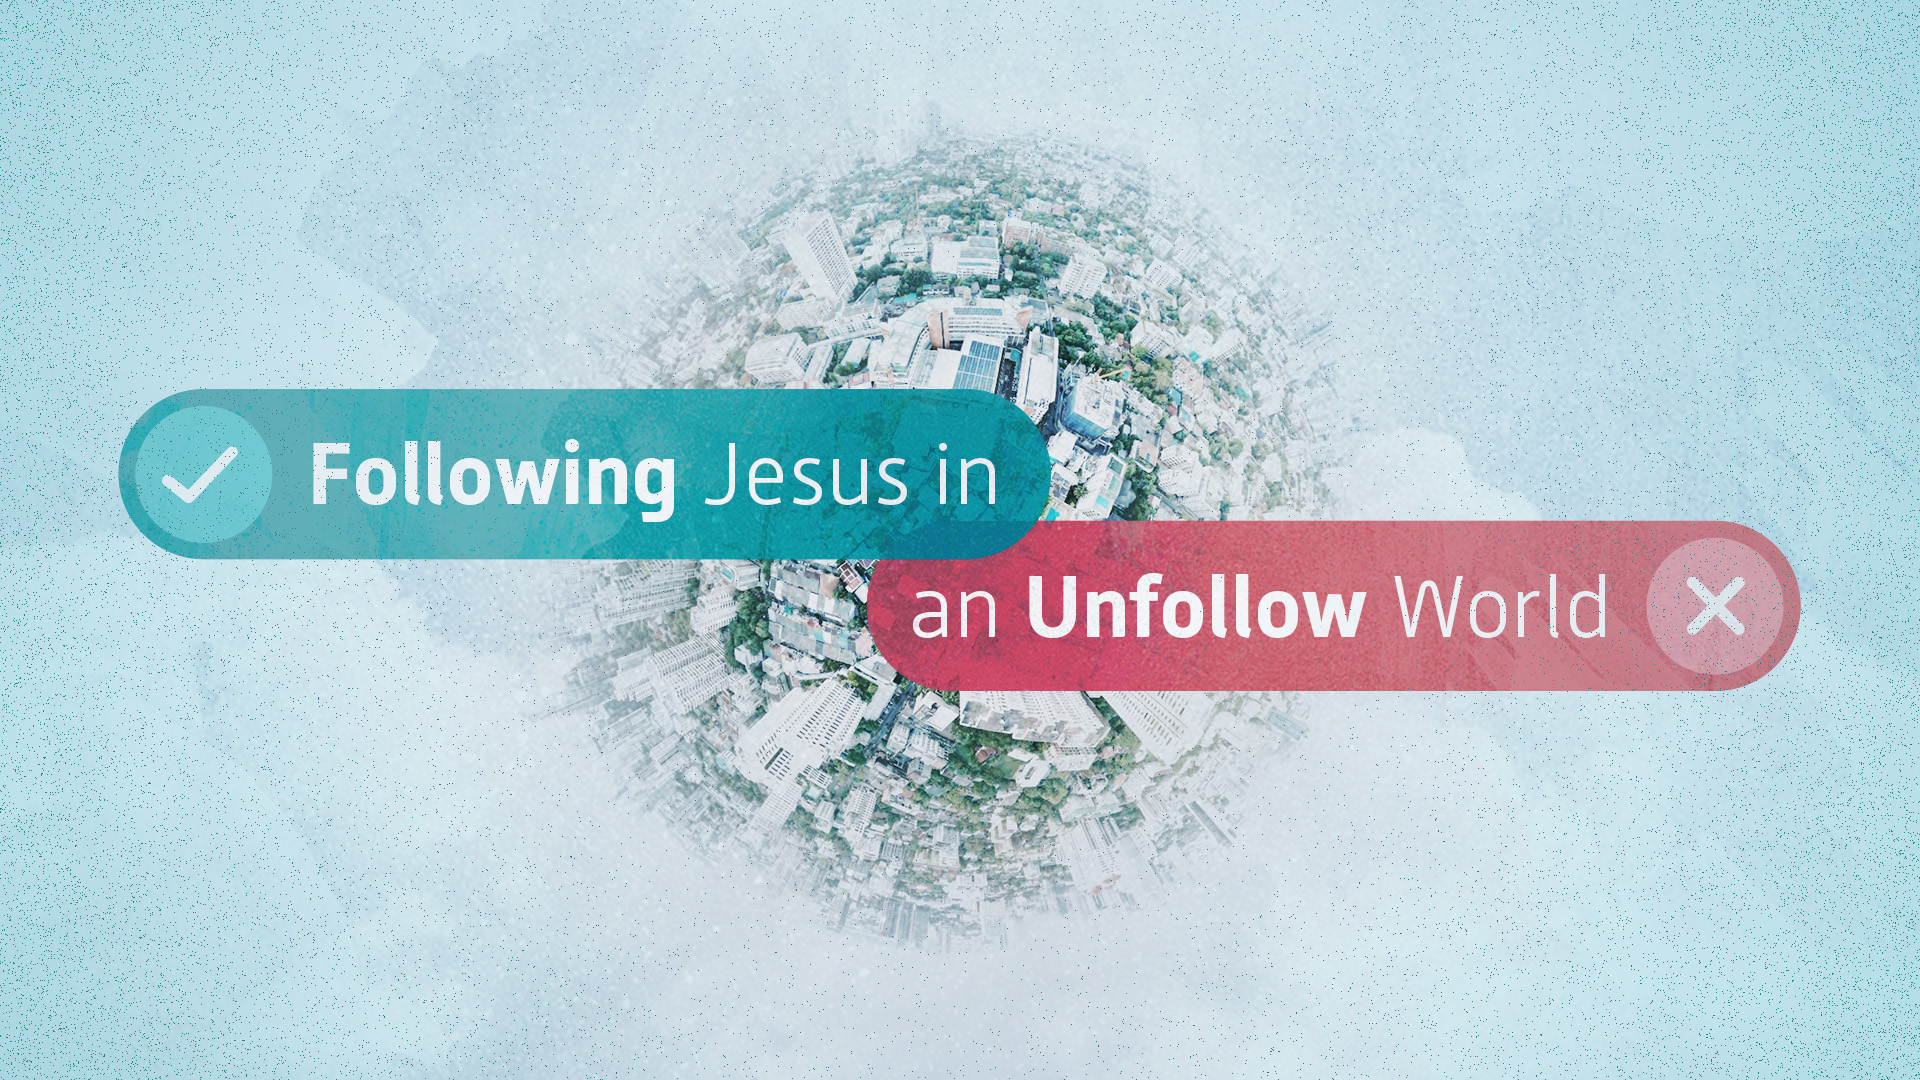 Following Jesus in an Unfollow World